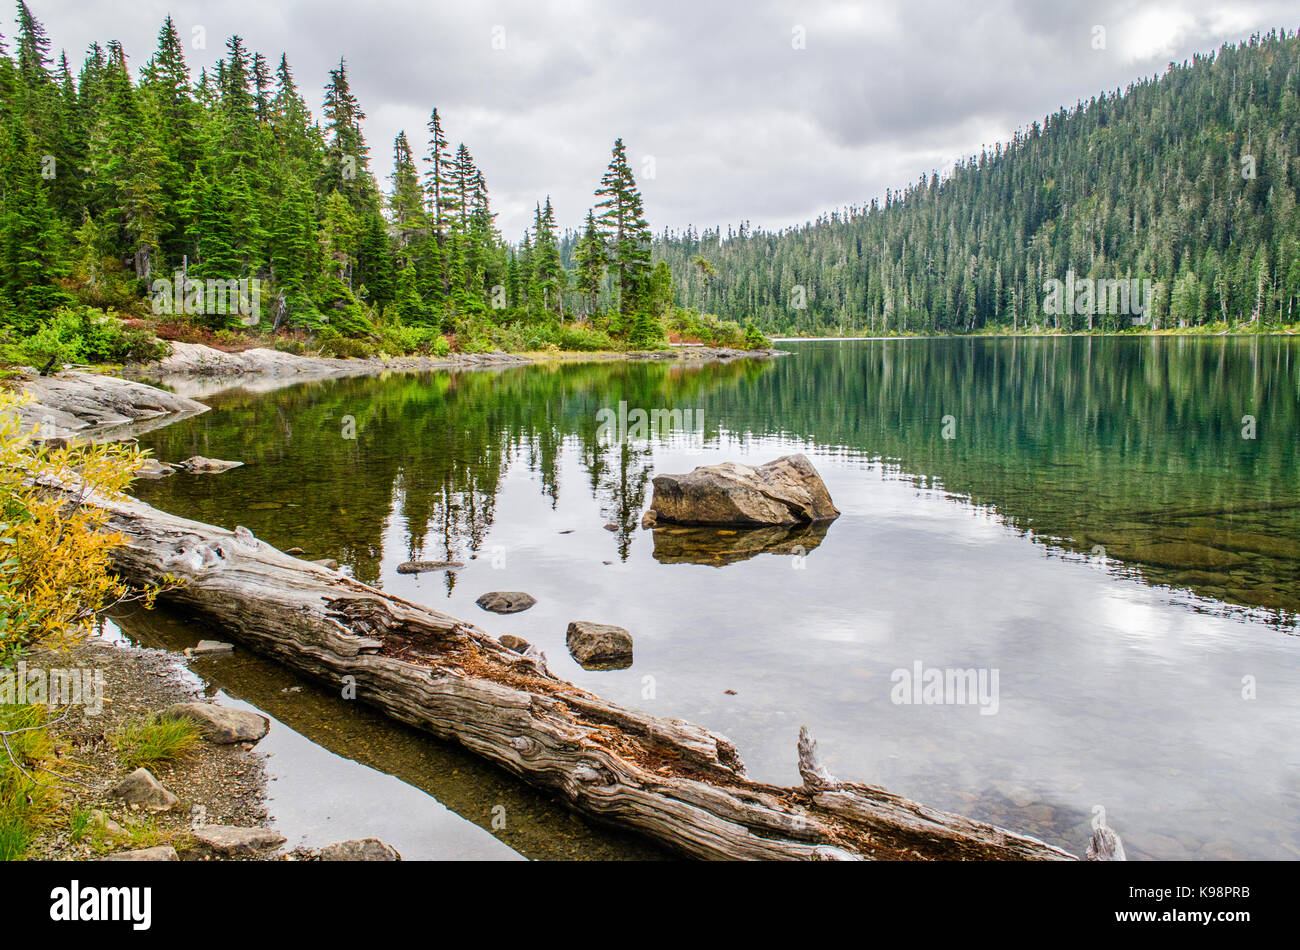 Driftwood and reflections, Lake helen MacKenzie, Strathcona, Canada - Stock Image